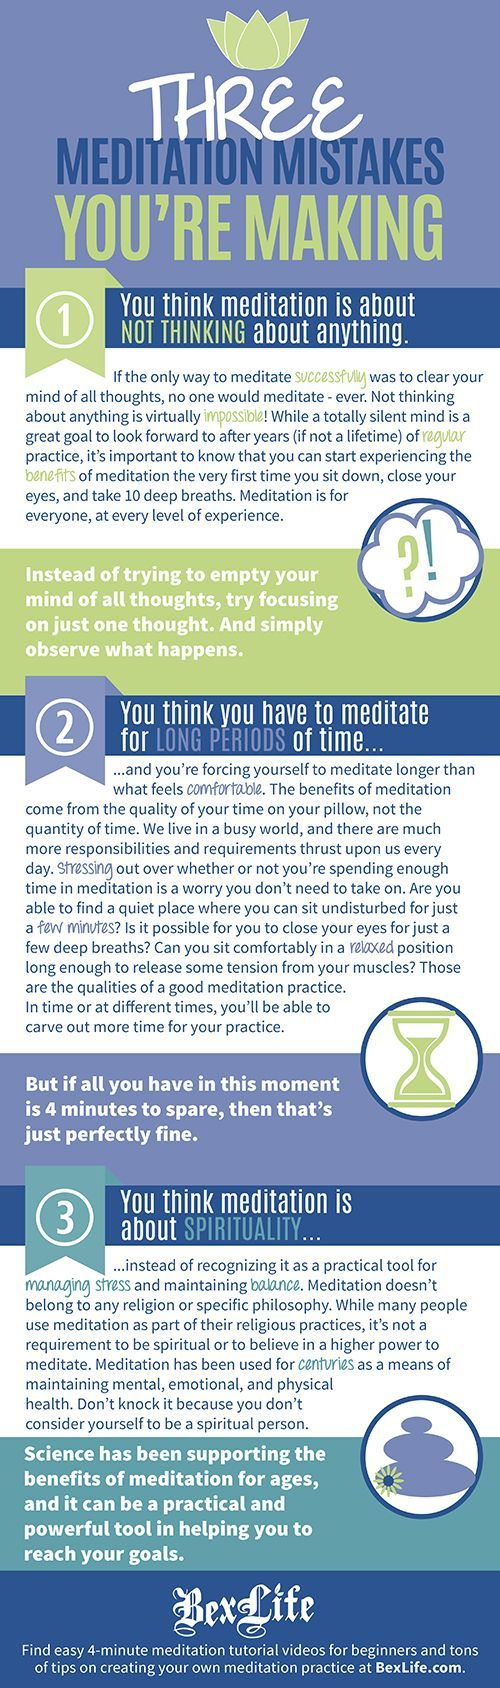 Meditation is more popular than ever, making its way into the mainstream more and more every day.  However, with its growing popularity comes pervasive and often discouraging myths surrounding what meditation is and how to practice it correctly.  I am here to tell you that any barriers between you and having a sustainable and valuable meditation practice are false. Meditation is for YOU!